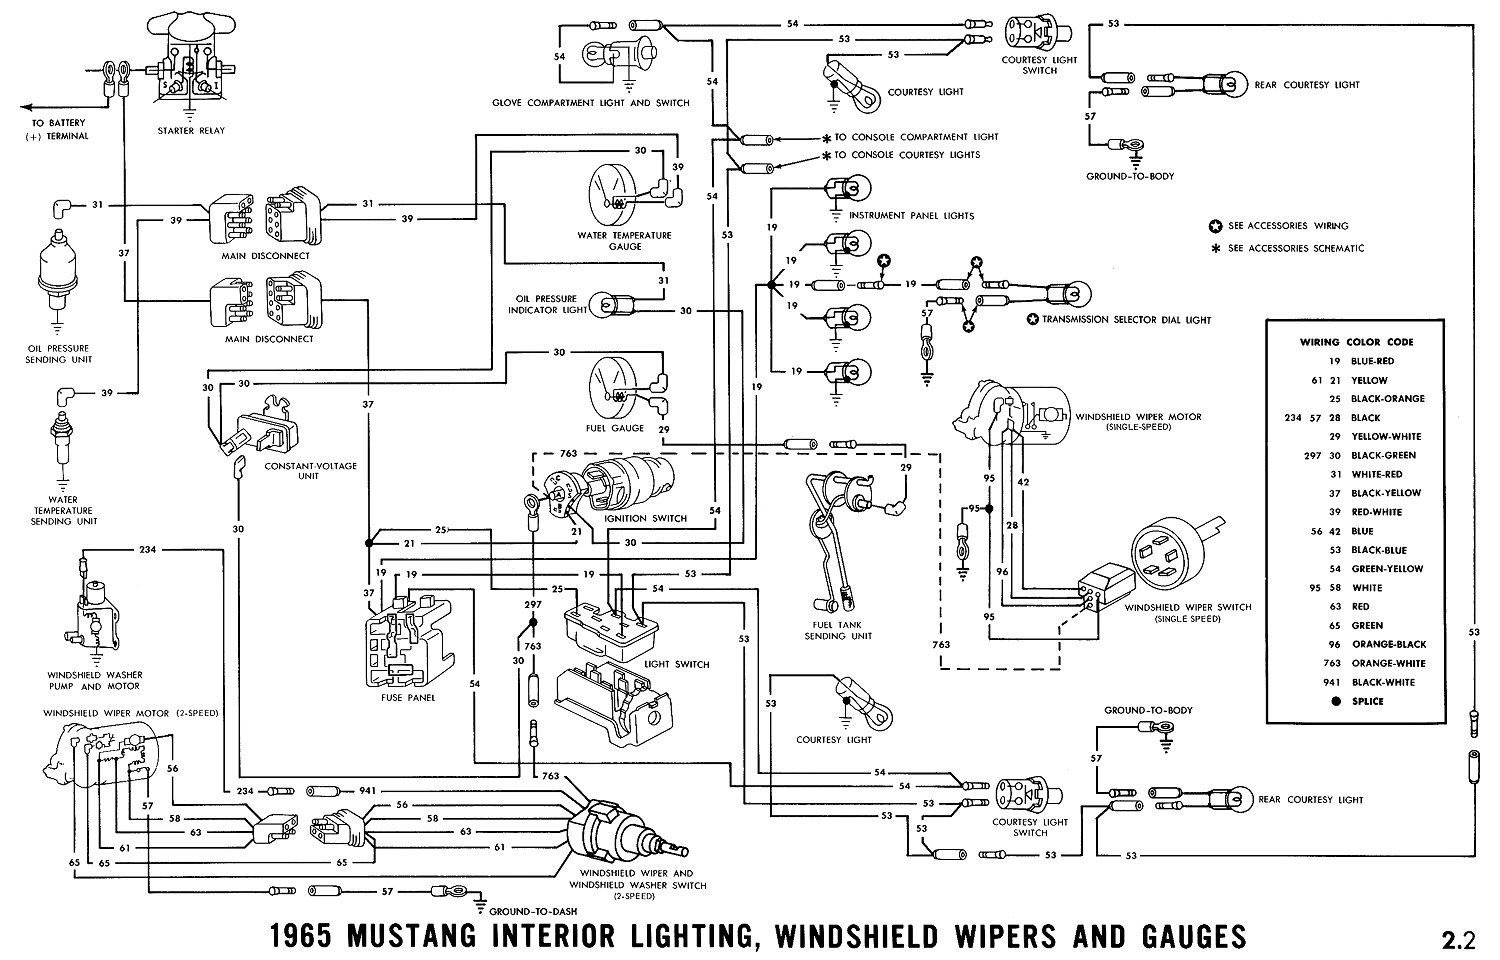 65 mustang radio wiring diagrams - wiring diagram rent-data-b -  rent-data-b.disnar.it  disnar.it